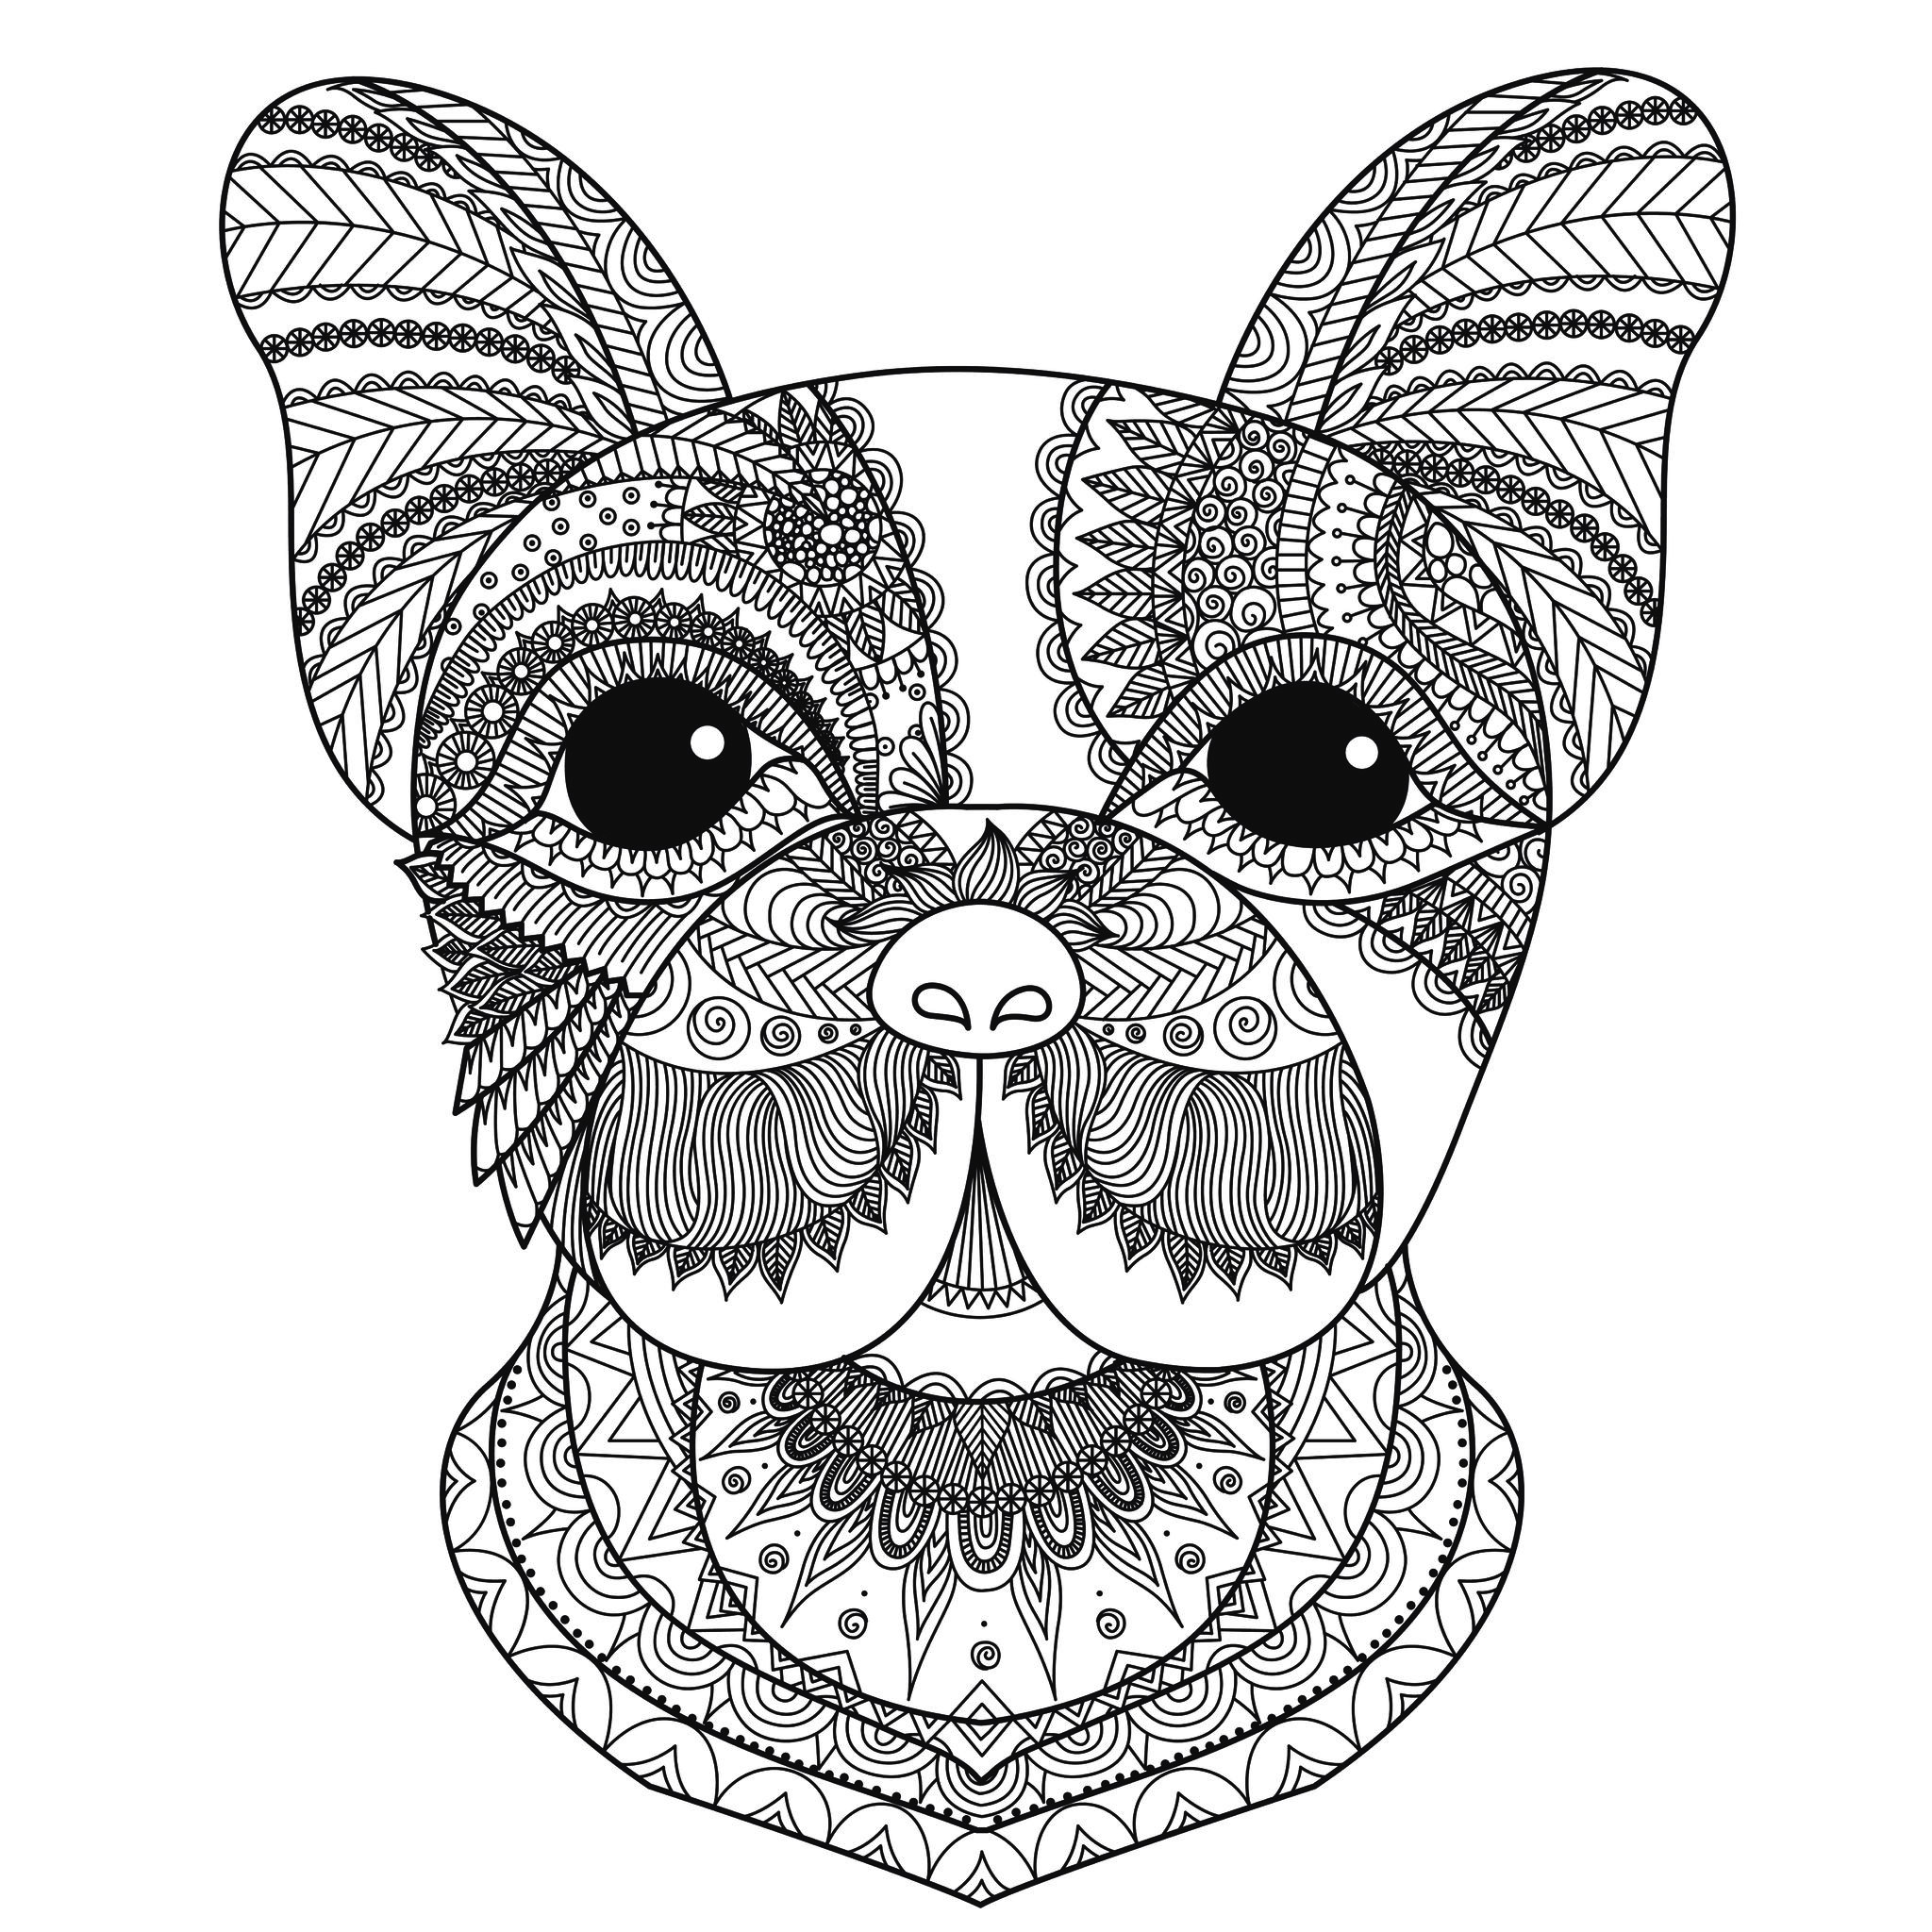 dog colouring in dog to color for kids dogs kids coloring pages colouring in dog